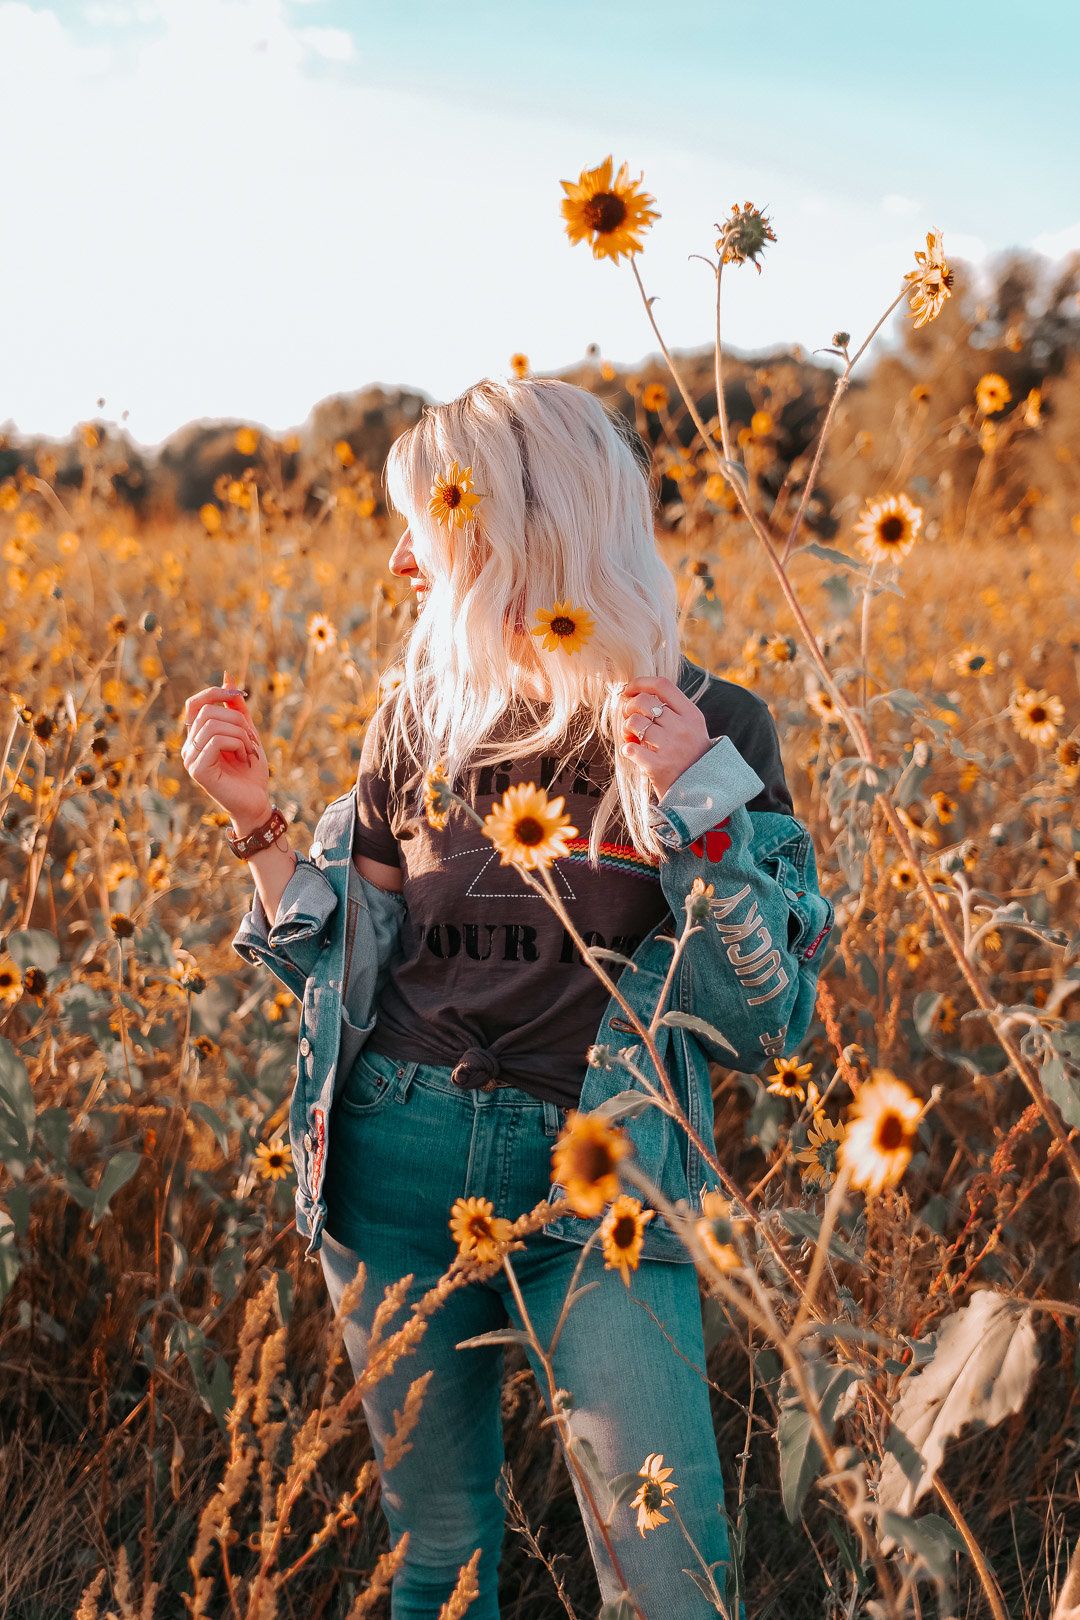 prescott_sunflowers-5